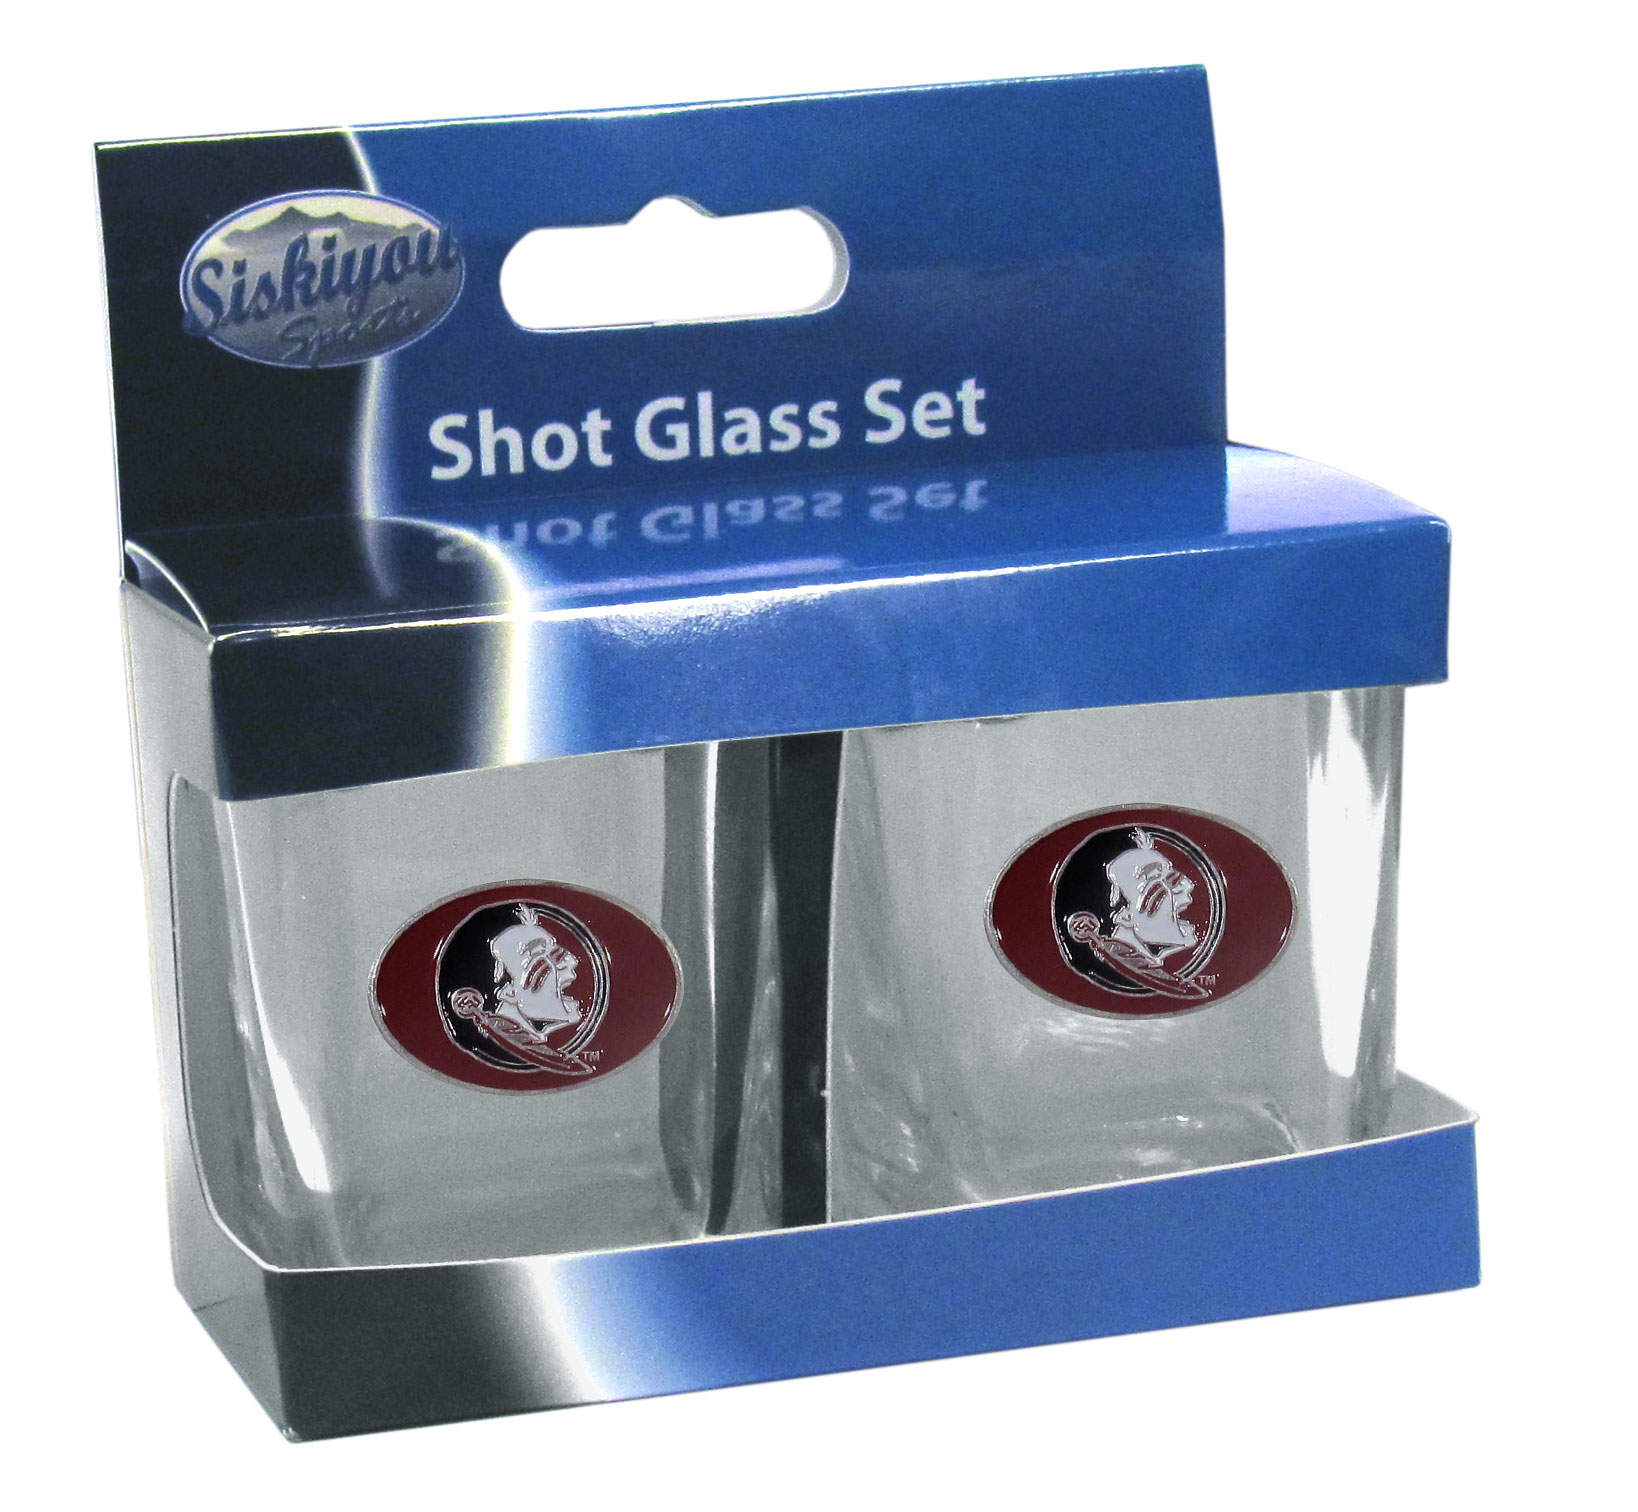 Florida St. Seminoles Shot Glass Set - This is the perfect gift for any devoted Florida St. Seminoles fan! Set of 2 glasses, 2oz capacity, with school logos on each glass. Perfect for tailgating or game day gatherings